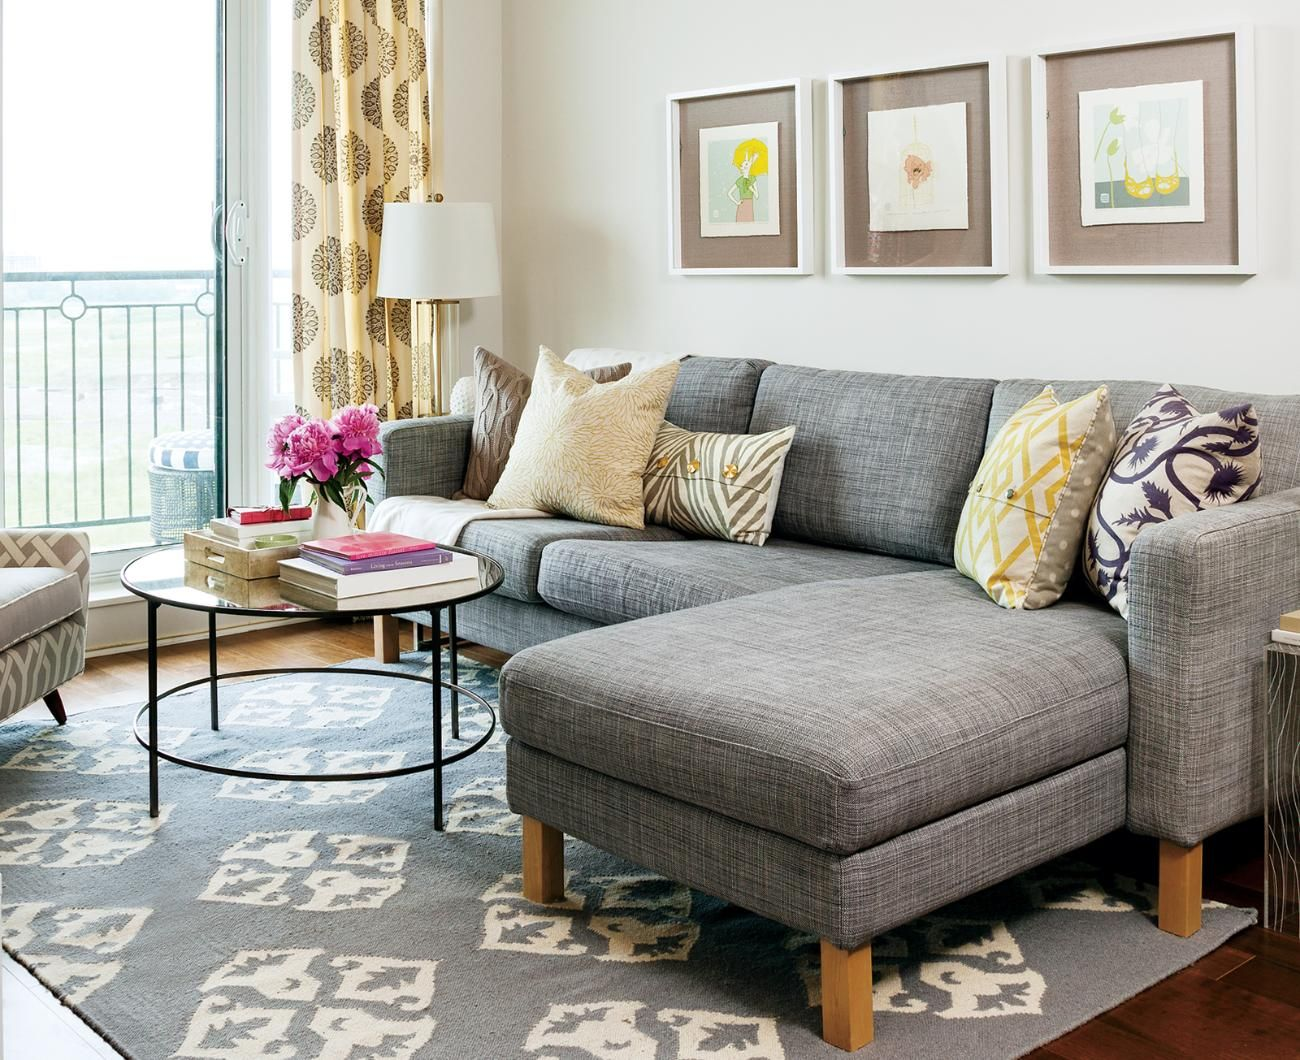 Apartment tour: Colourful rental makeover   Small living ... on Awesome Apartment Budget Apartment Living Room Ideas  id=99553